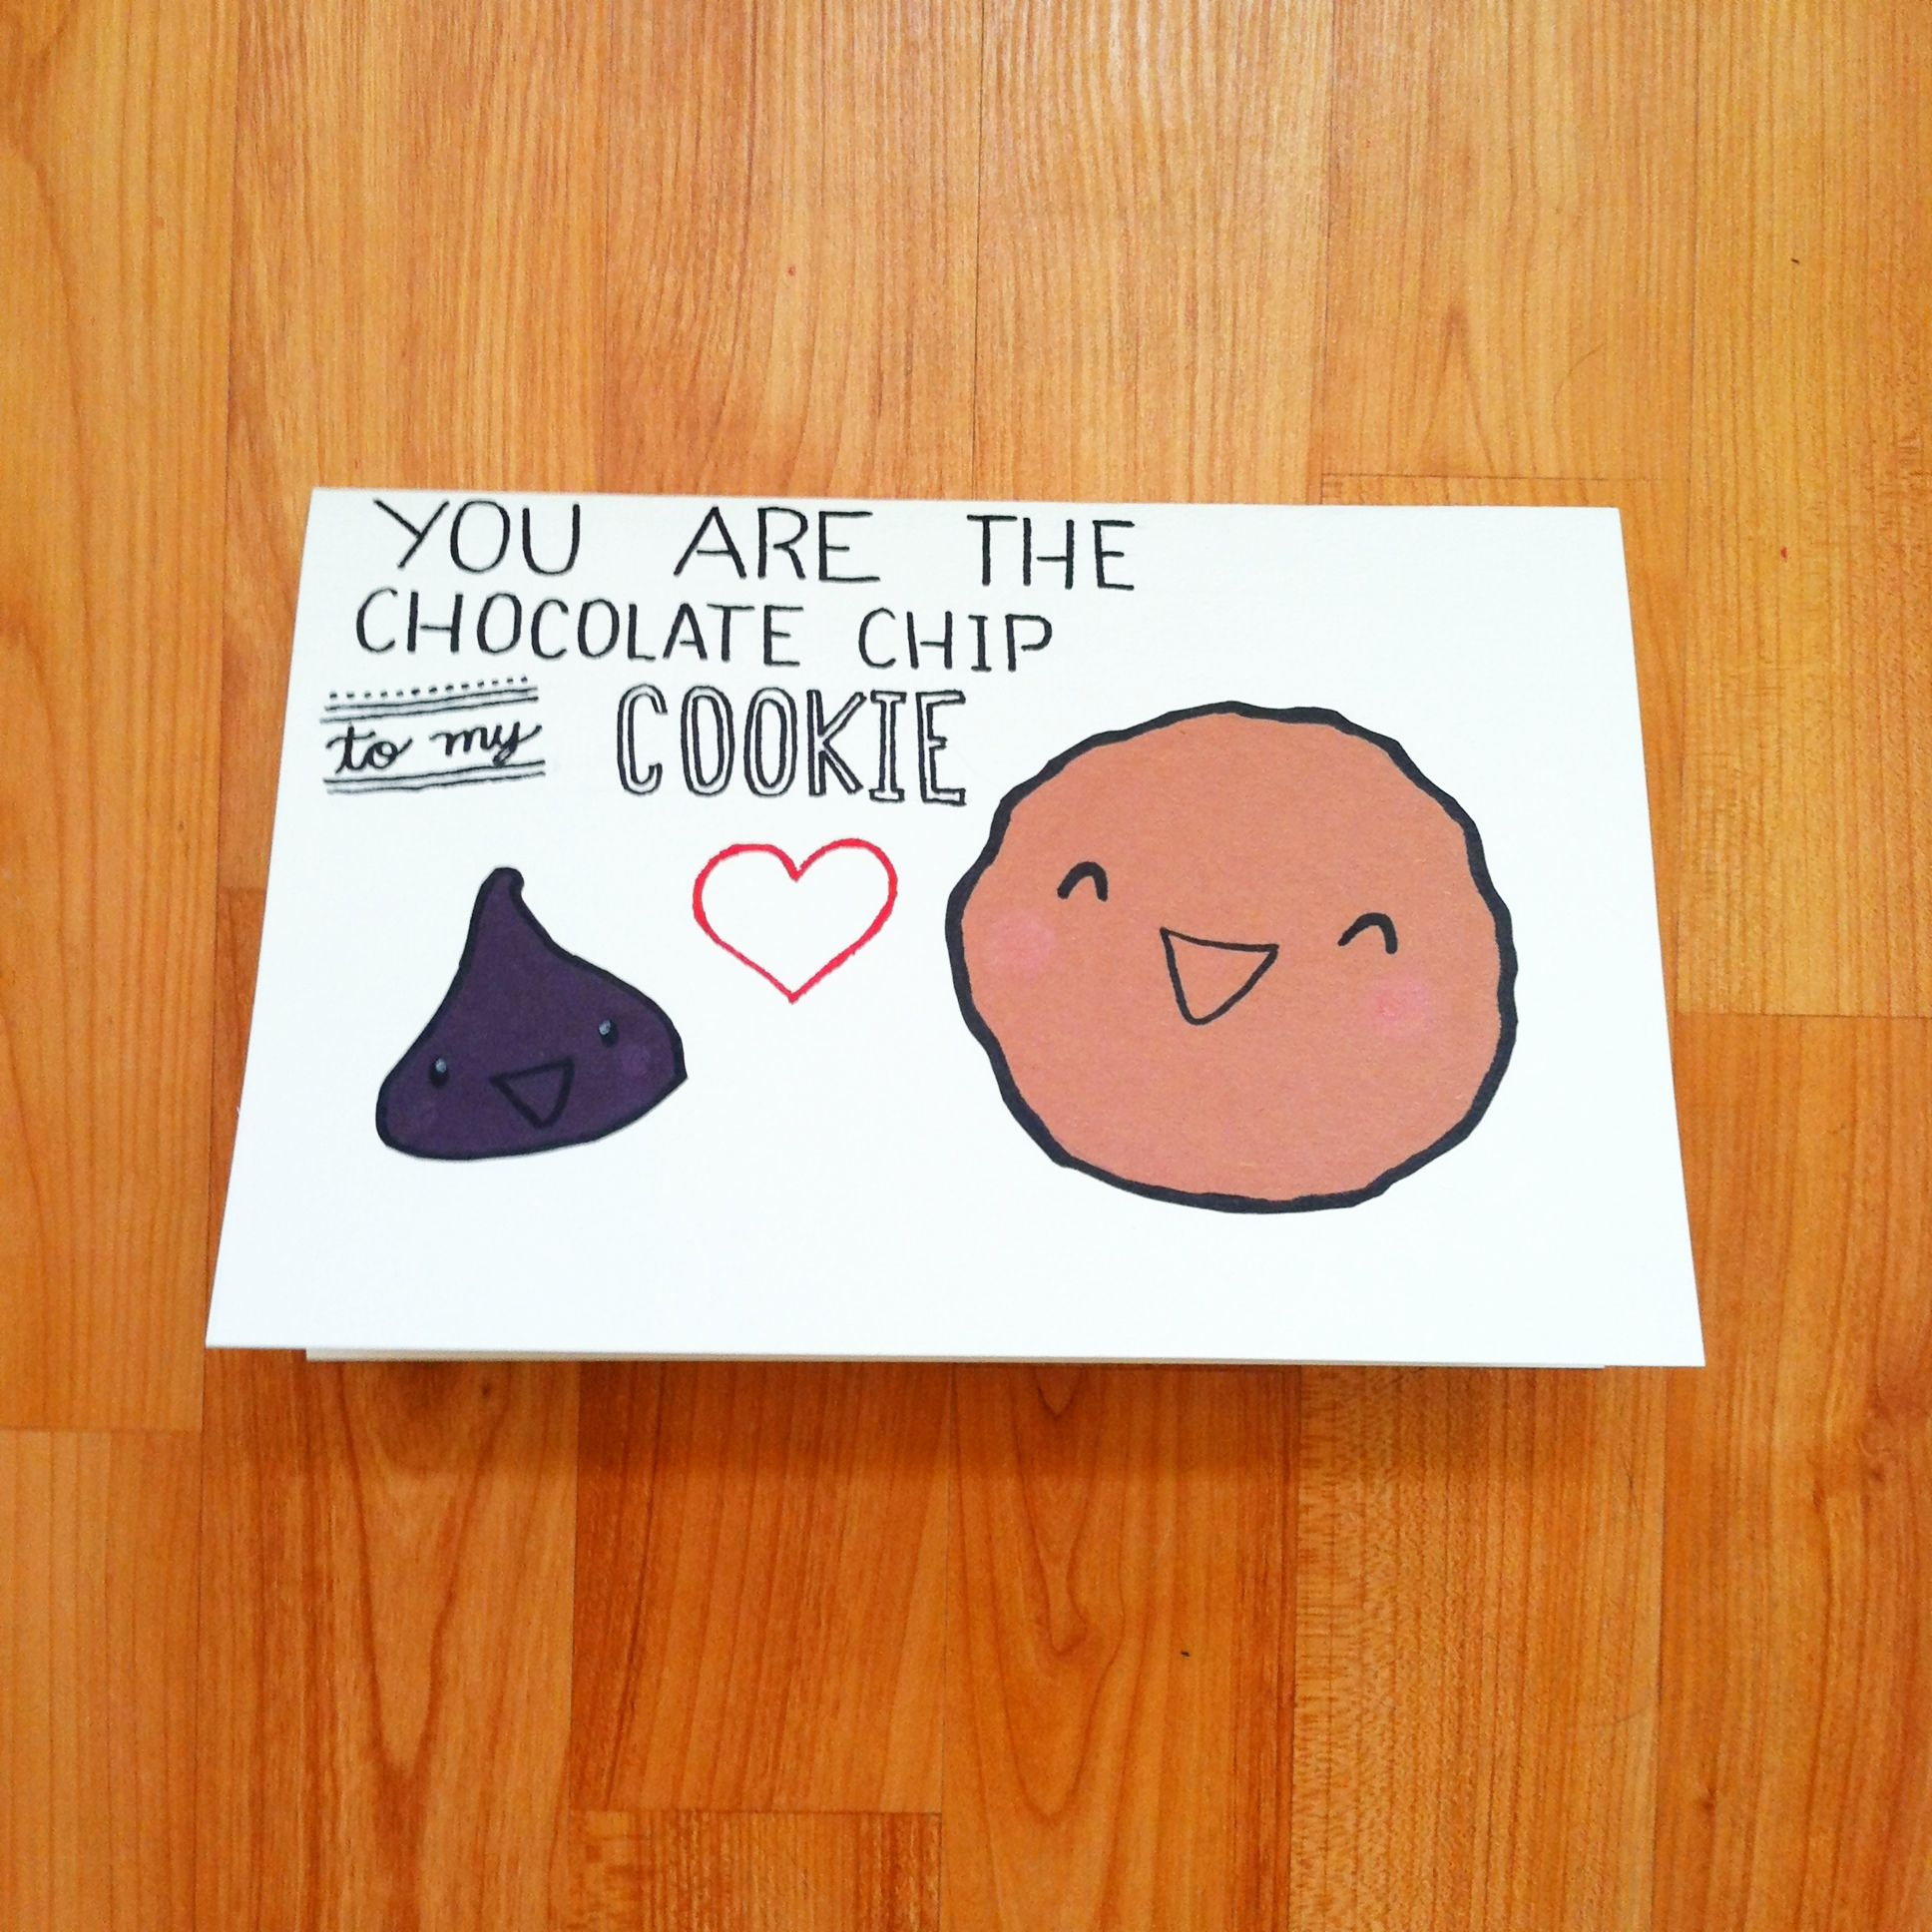 Homemade valentine 39 s day card i made for my cookie lovin for Valentine day card ideas